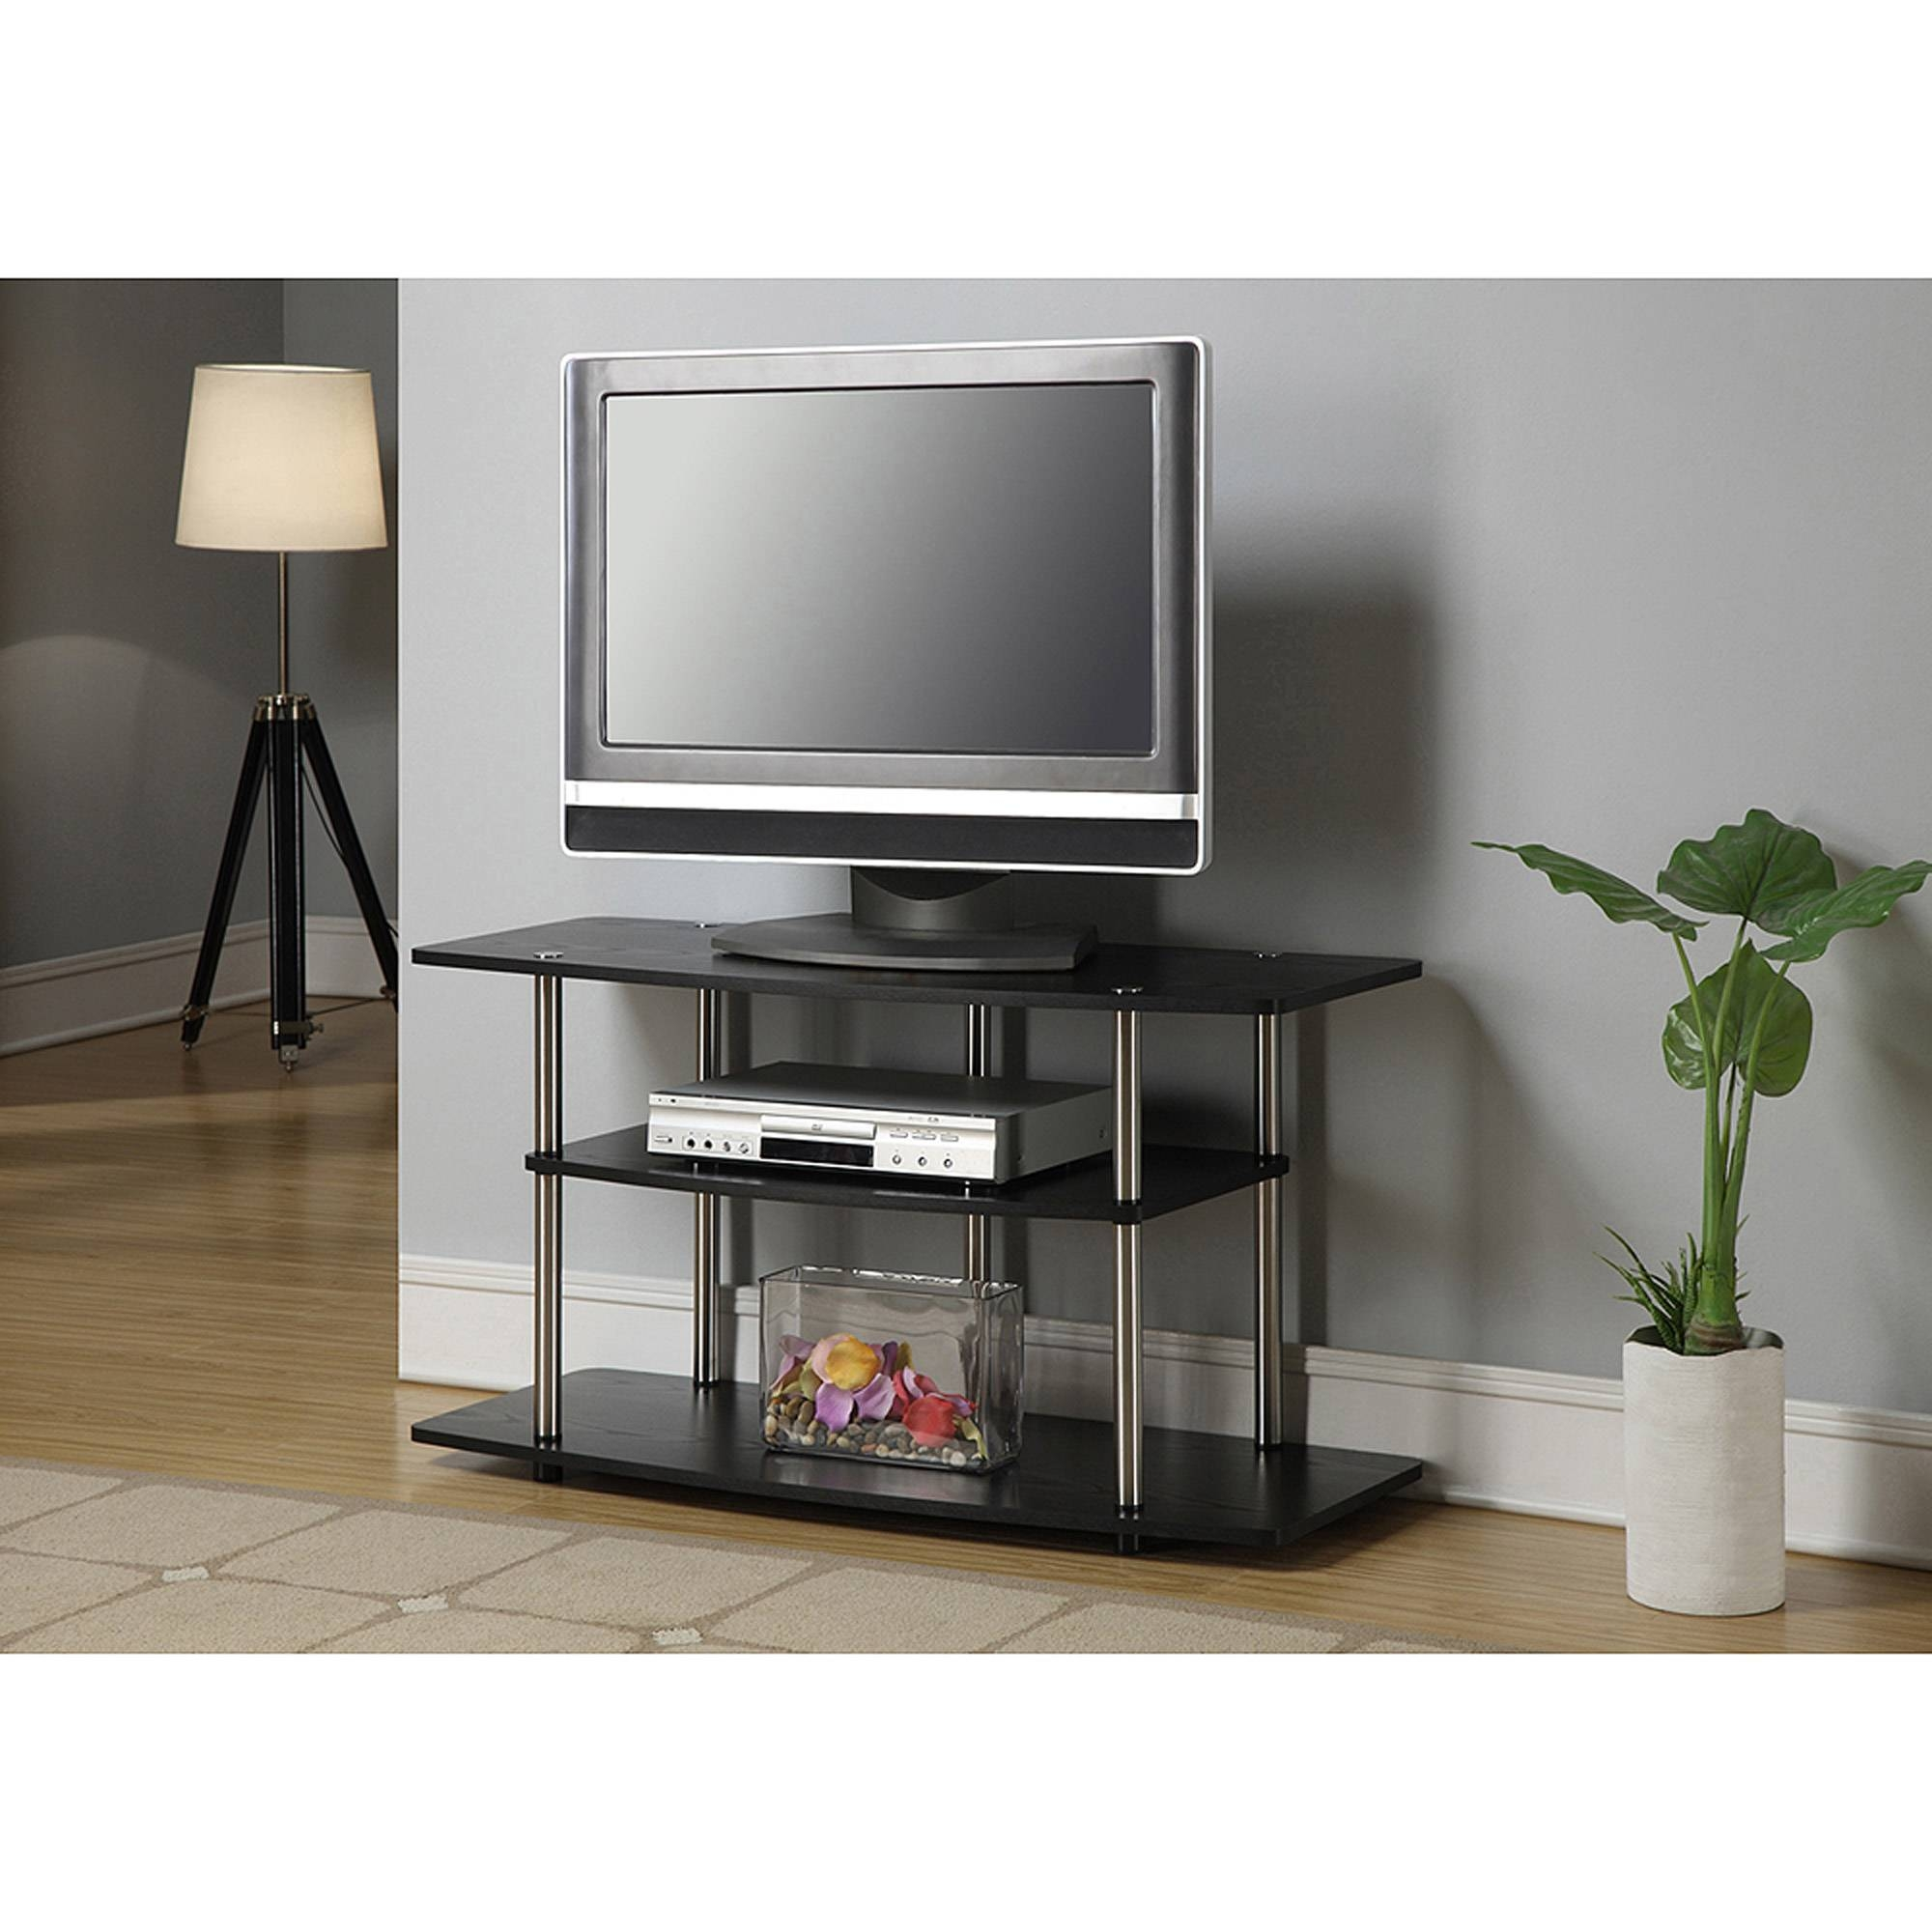 "Walker Edison Black Tv Stand For Tvs Up To 48"" - Walmart pertaining to Tv Stands for Large Tvs (Image 13 of 15)"